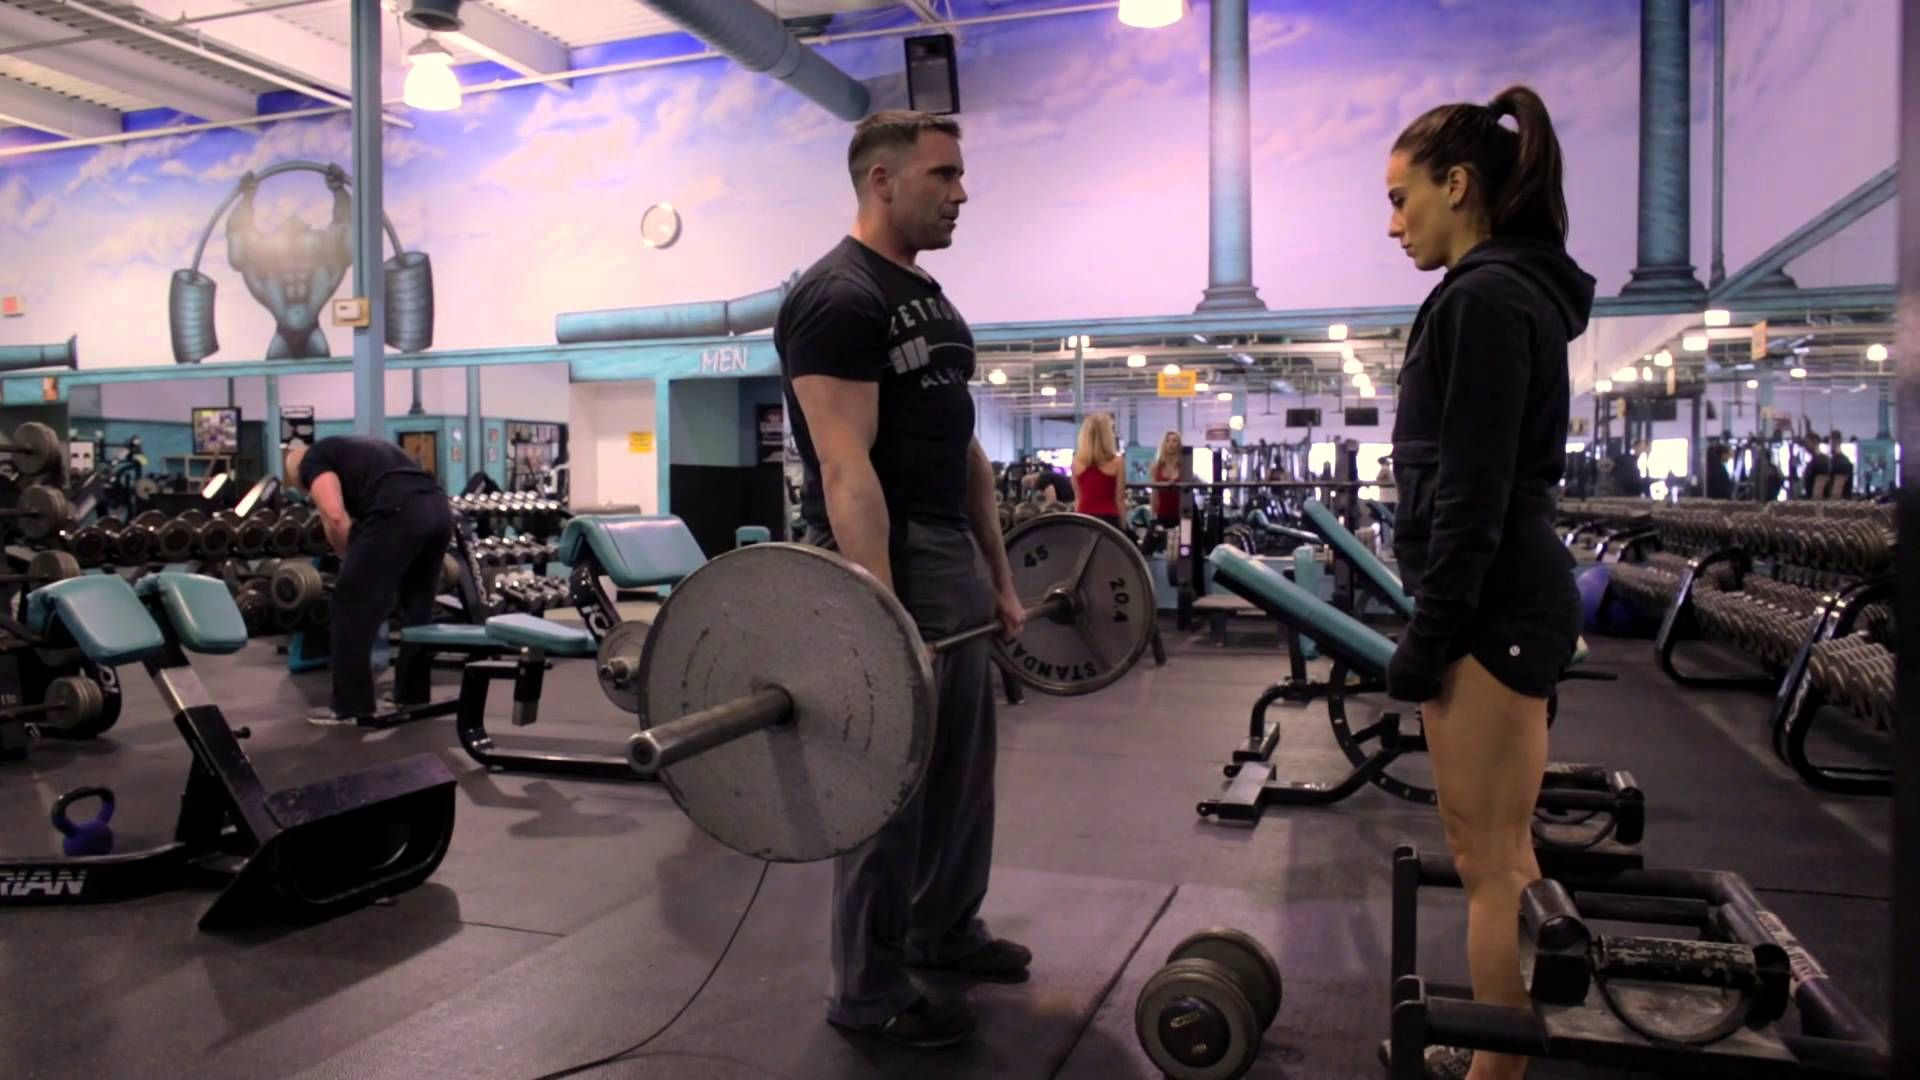 How to deadlift correctly fit board workouts deadlift